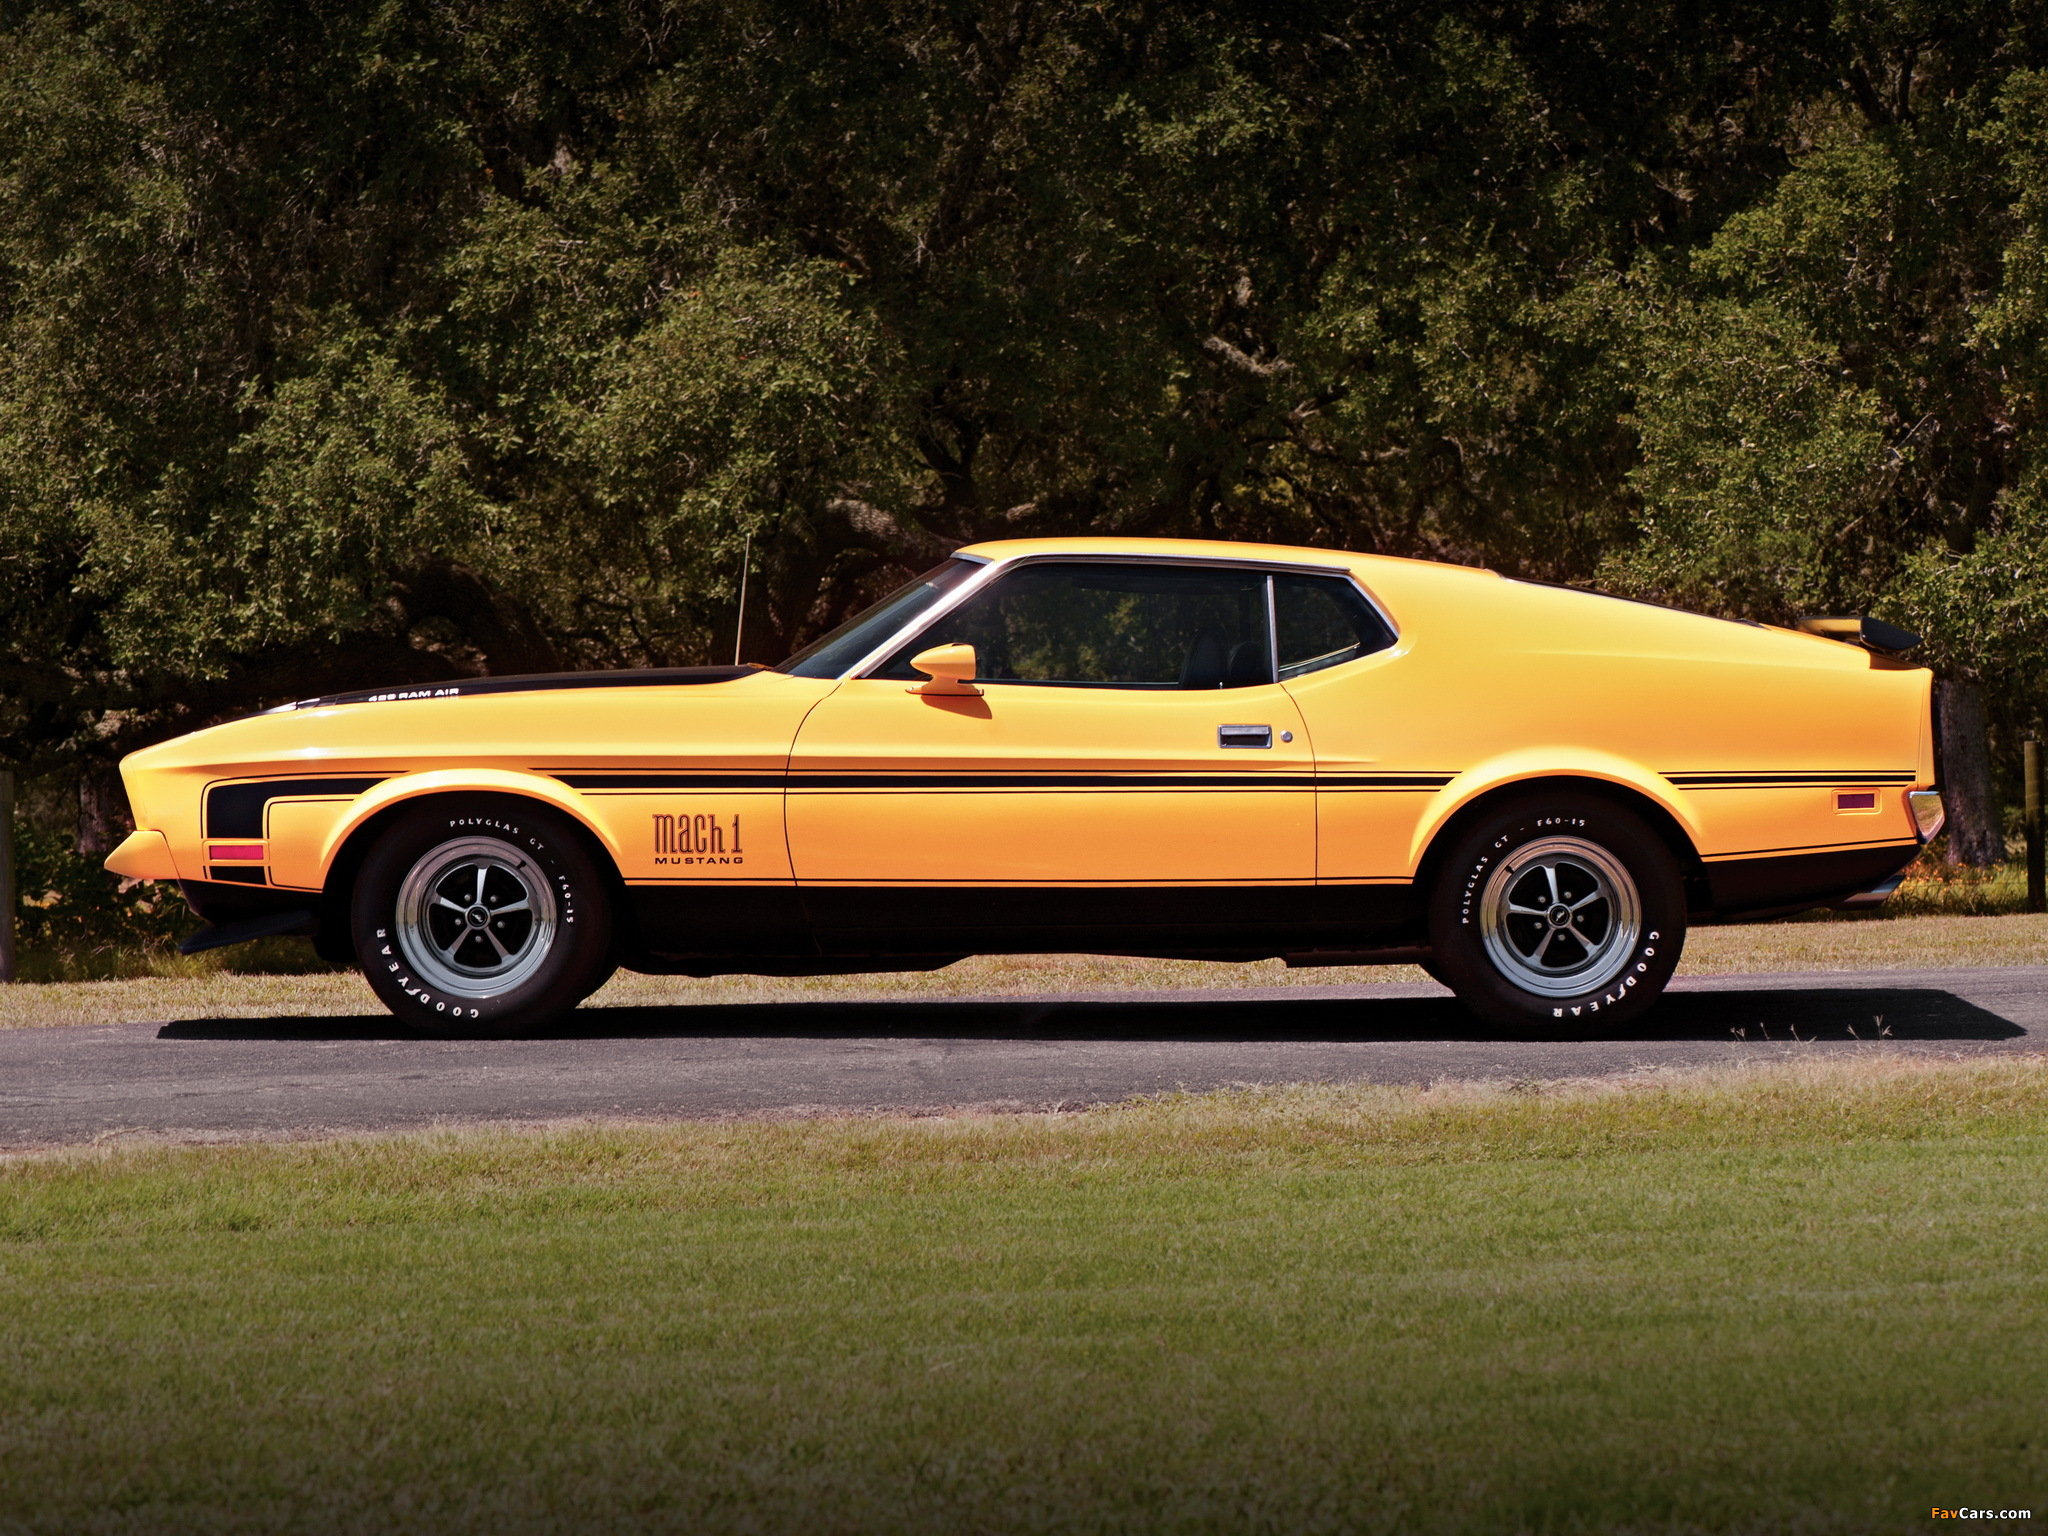 1024x768 Car Wallpapers Images Of Mustang Mach 1 1971 72 2048x1536